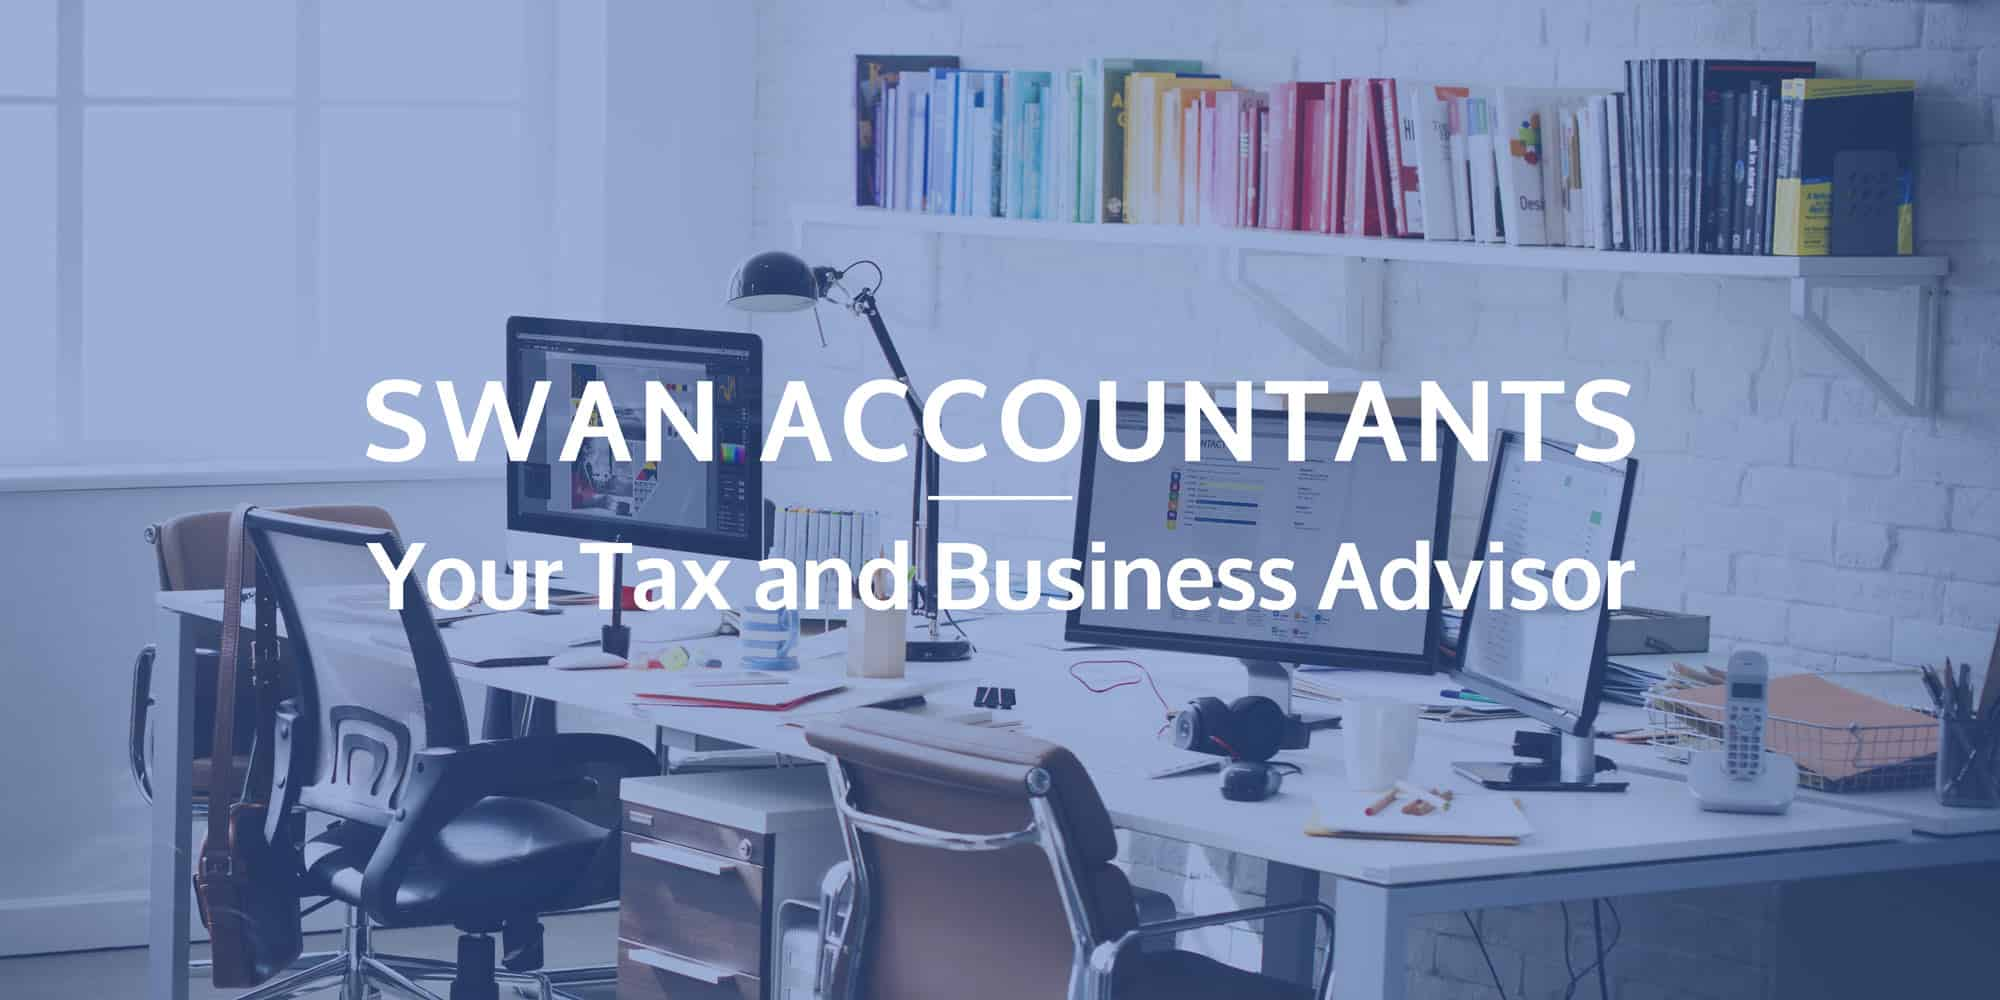 Swan Accountants - Your Tax and Business Advisor